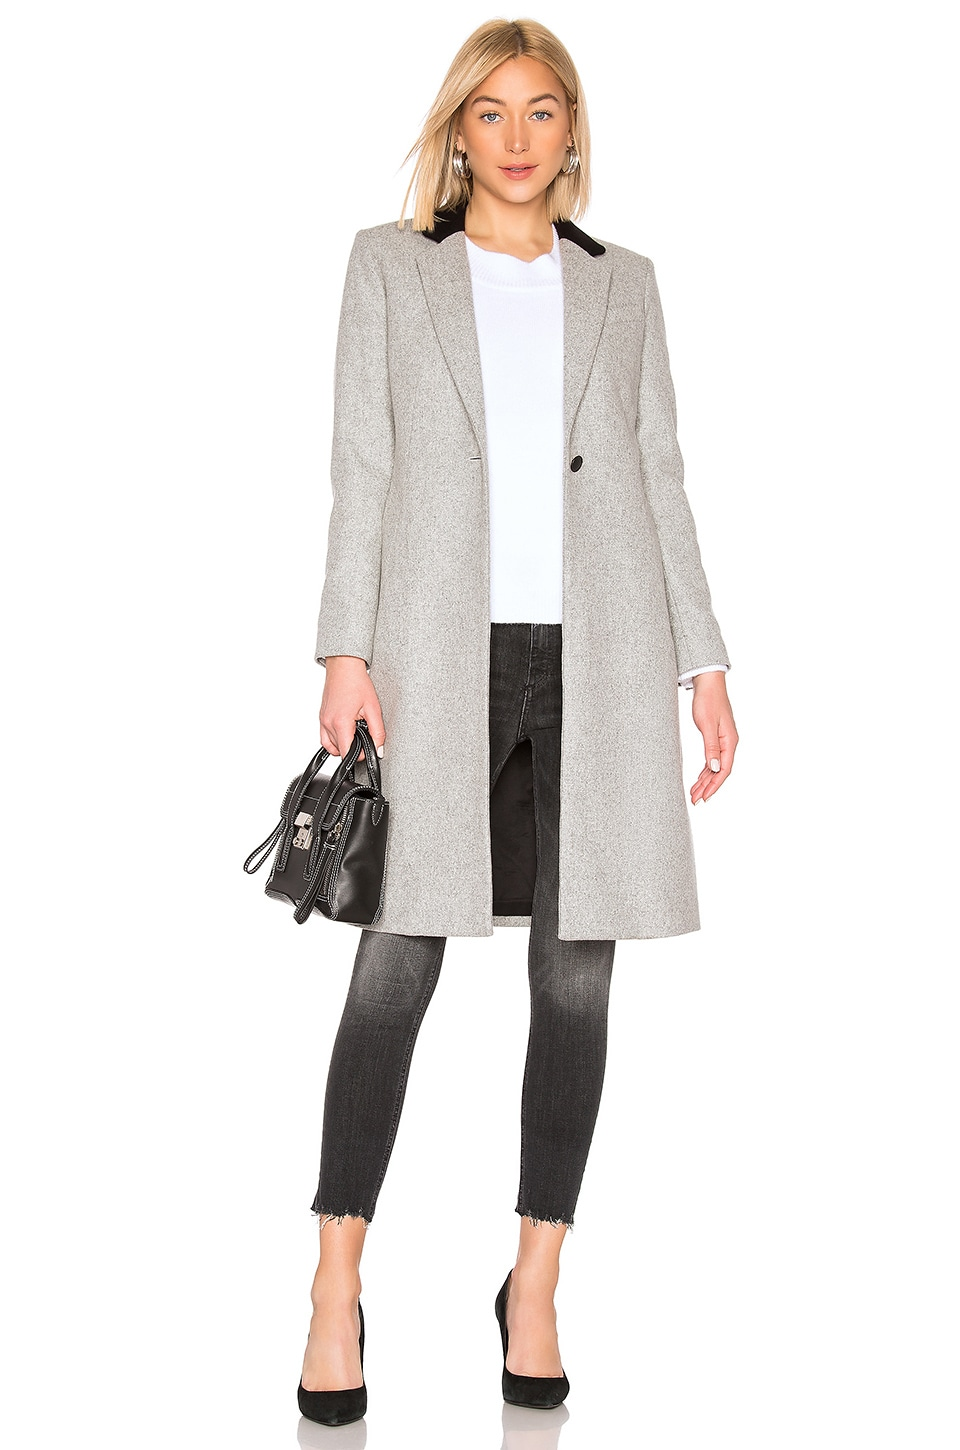 Rag & Bone Daine Coat in Light Heather Grey